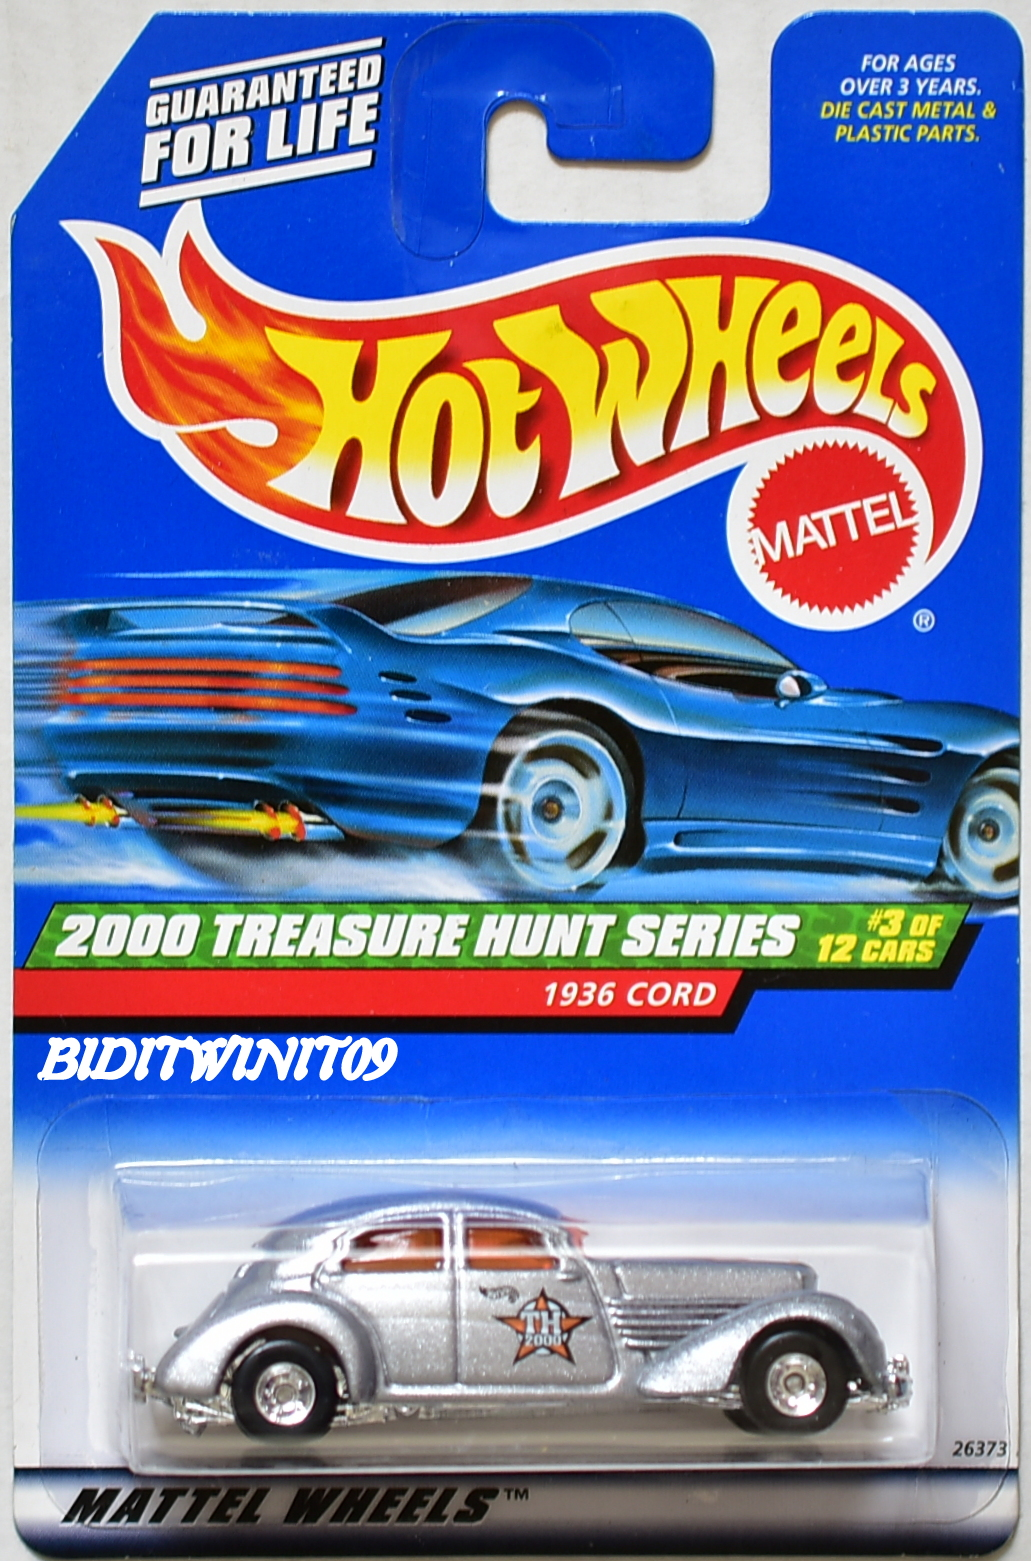 HOT WHEELS 2000 TTREASURE HUNT SERIES 3/12 1936 CORD